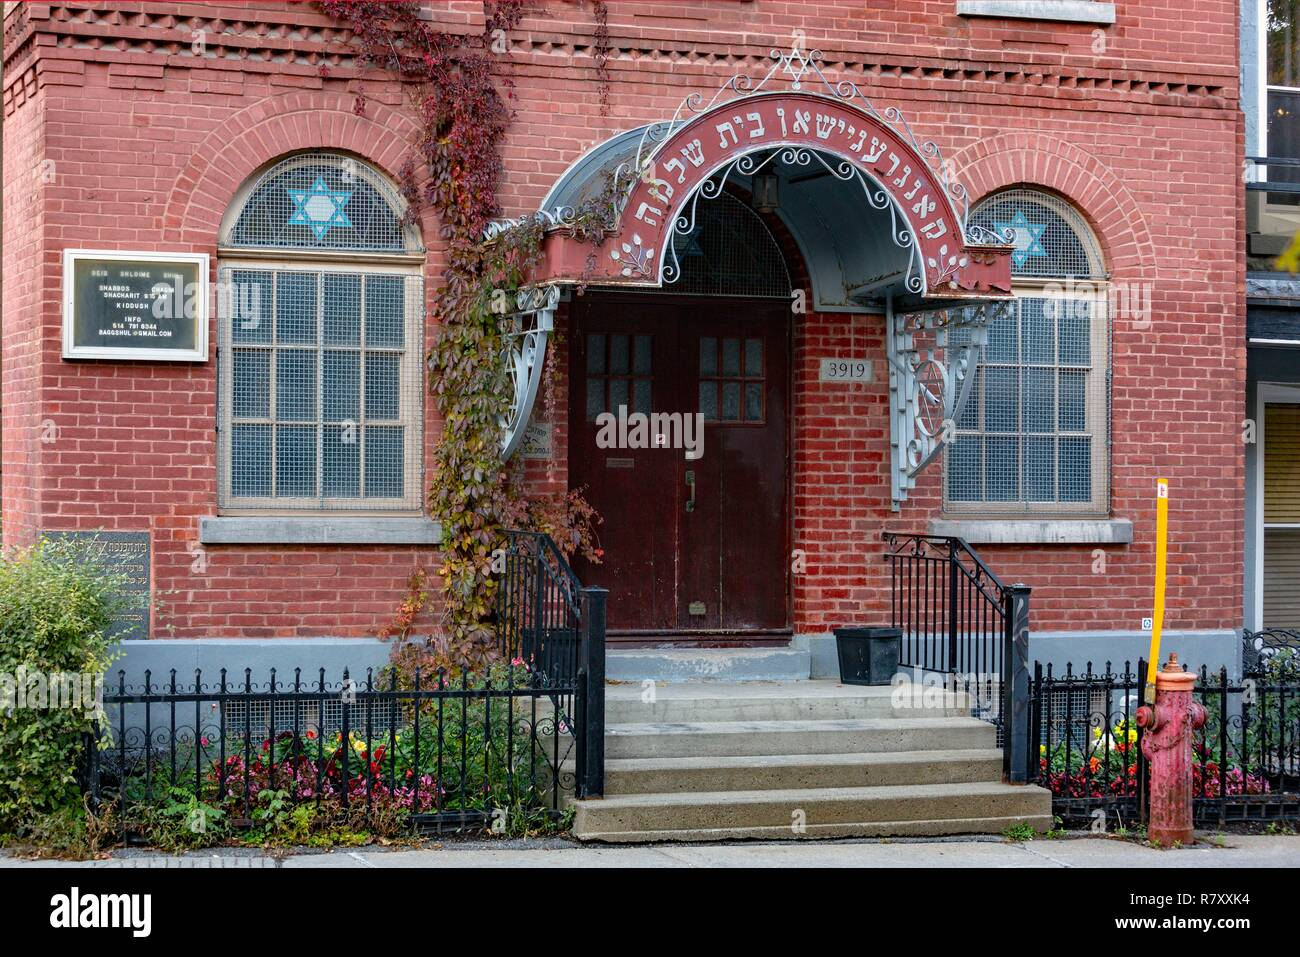 Canada, Quebec province, Montreal, Religious Heritage, Synagogue Solomon Temple Bagg Street Shul - Stock Image